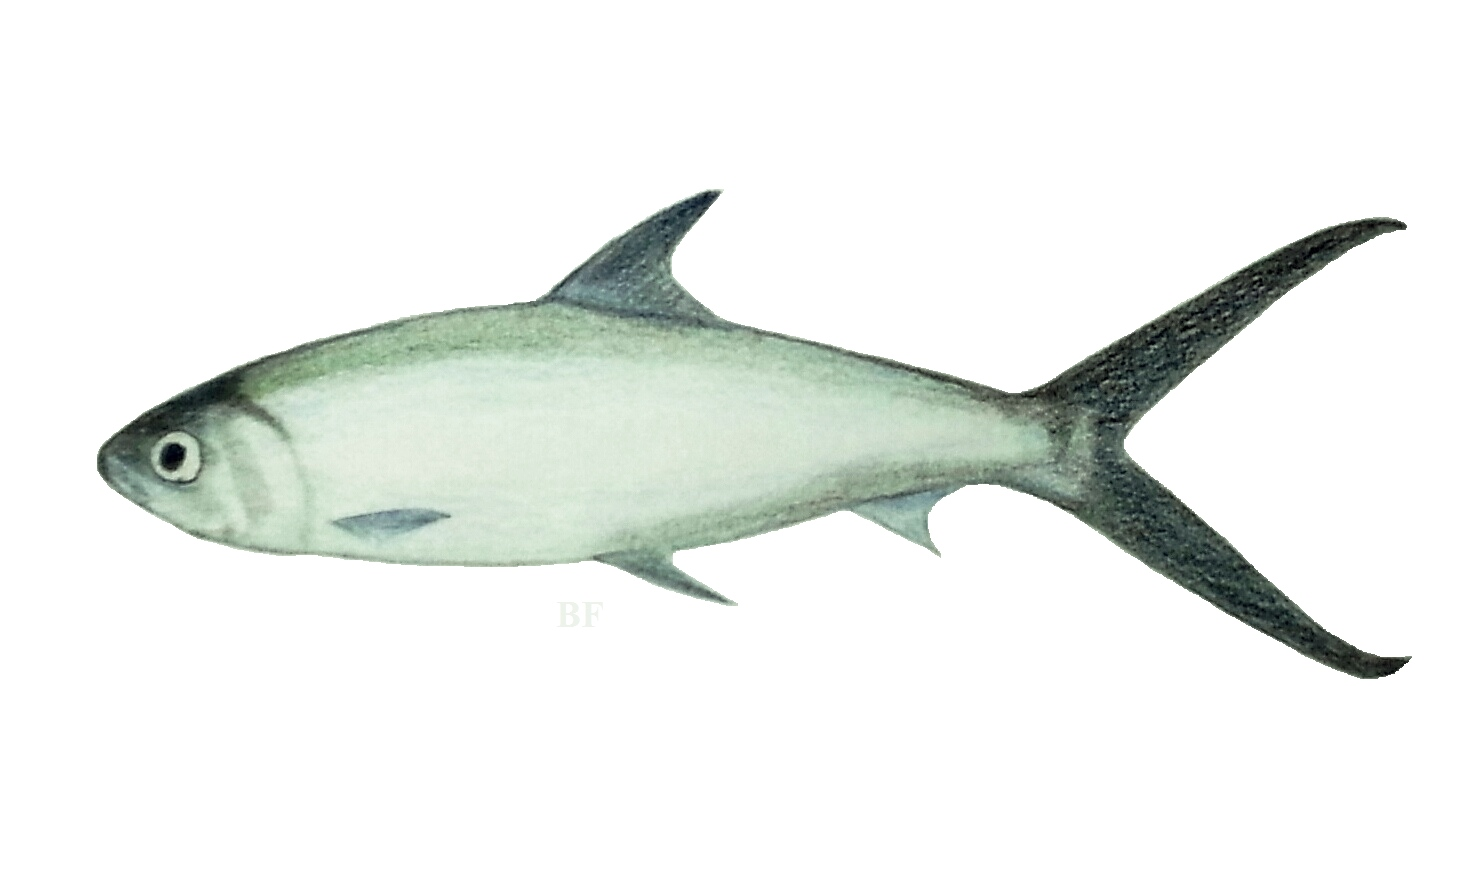 Catfish Red Tail Pirarara as well 182610850484 besides Monster Catfish Caught In Northern Italy Pics in addition Kitted Pike Adventure besides Milkfish Bangus. on fly fishing lures